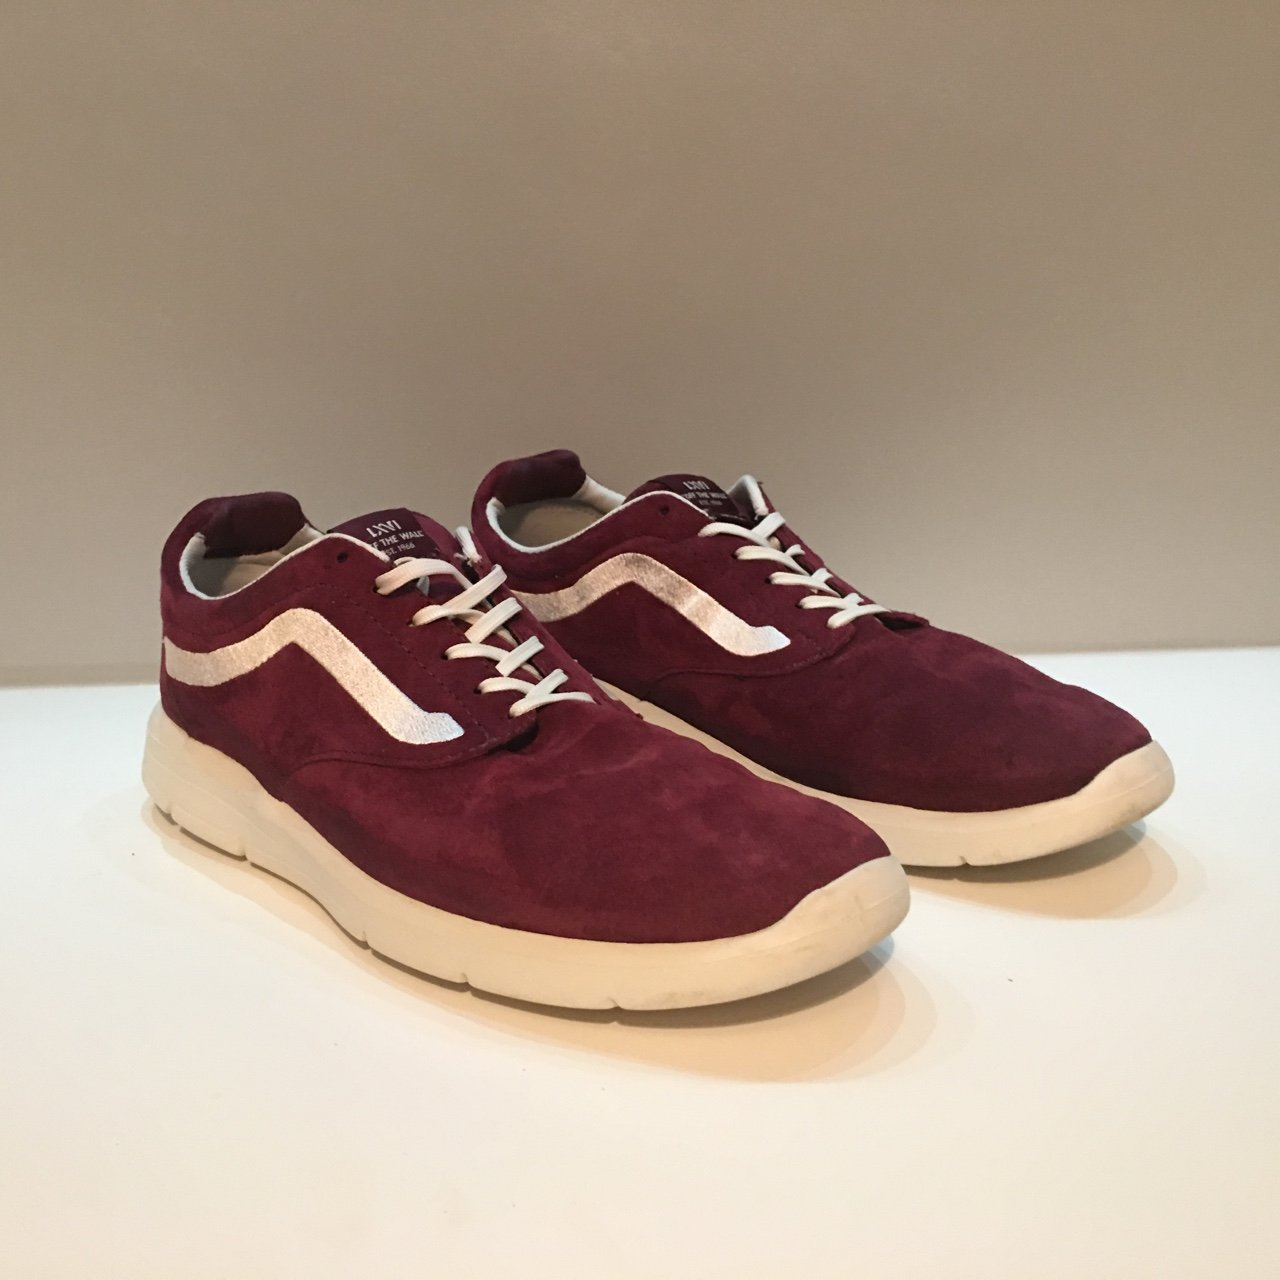 Red Maroon Burgundy Old Skool Old School suede Vans Such now - Depop 3b3f9c463